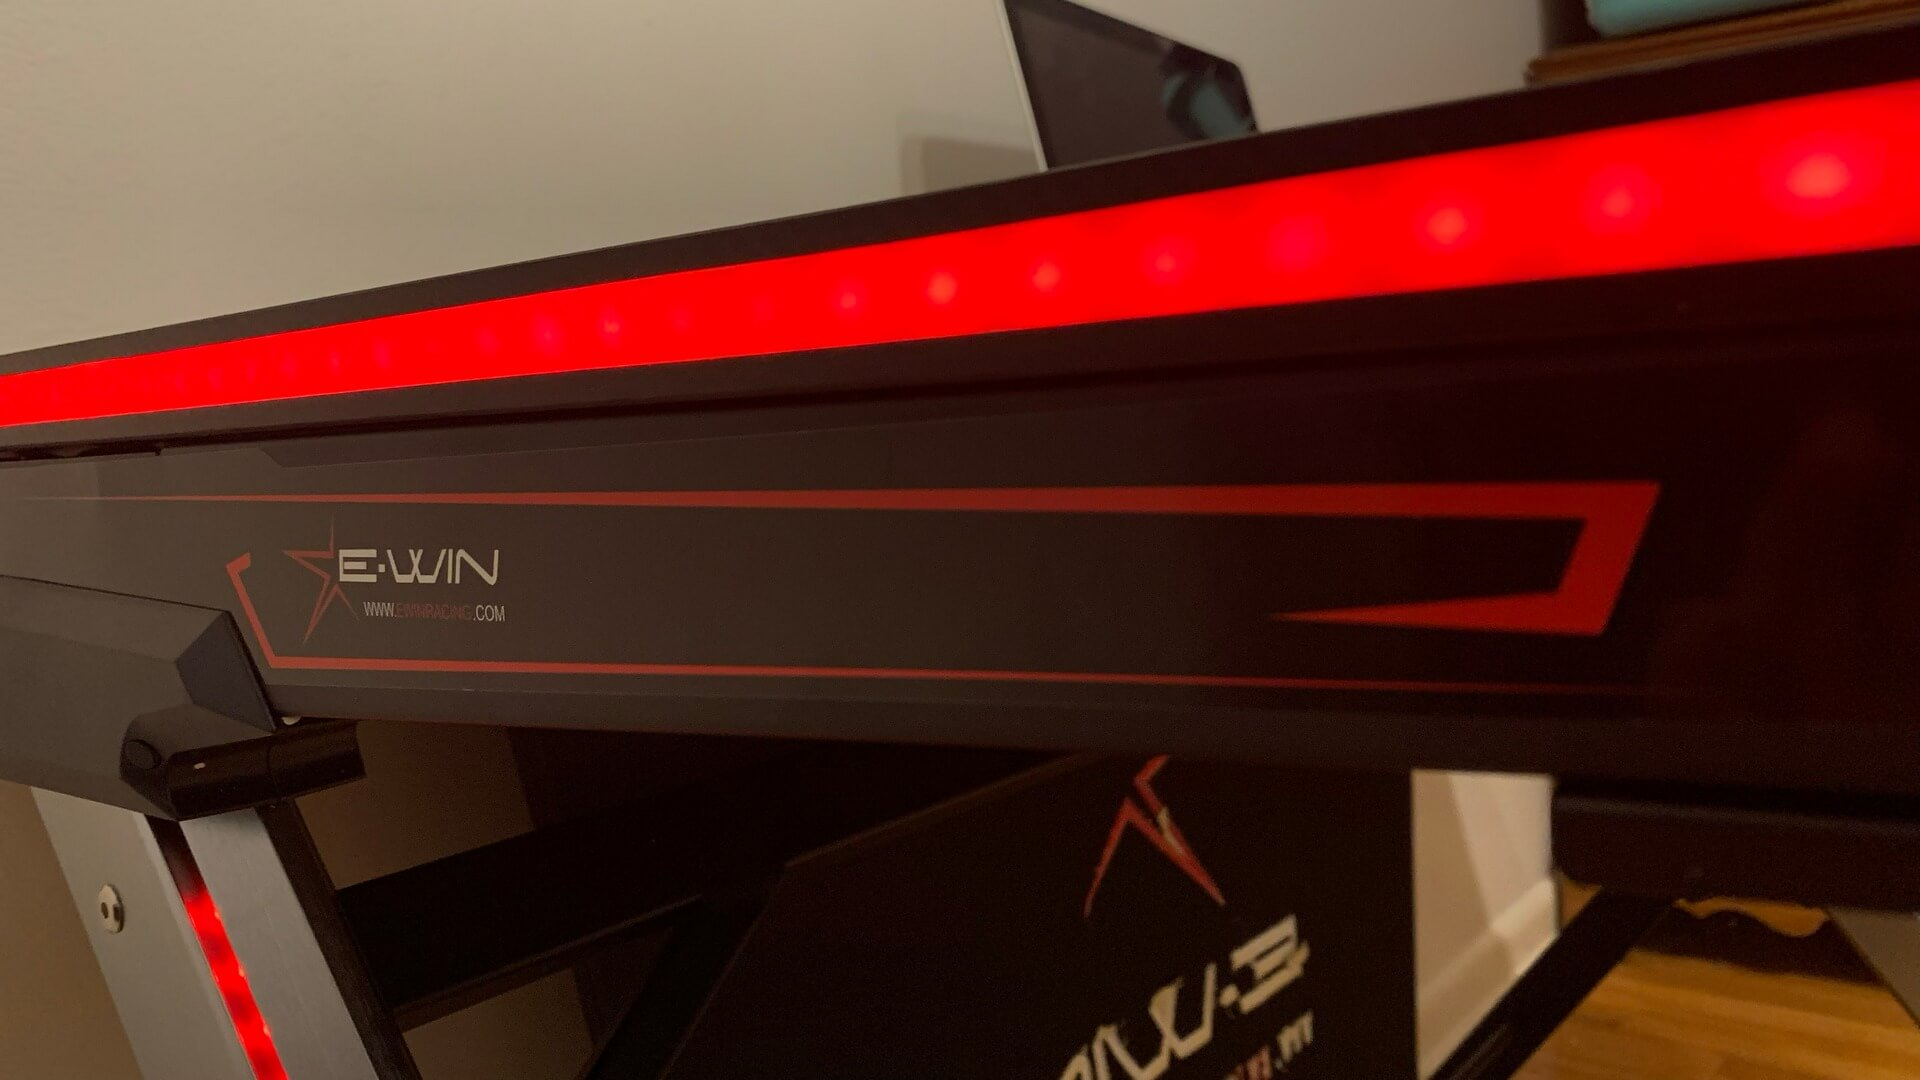 E-WIN 2.0 RGB Gaming Desk Review: Gaming in Style!